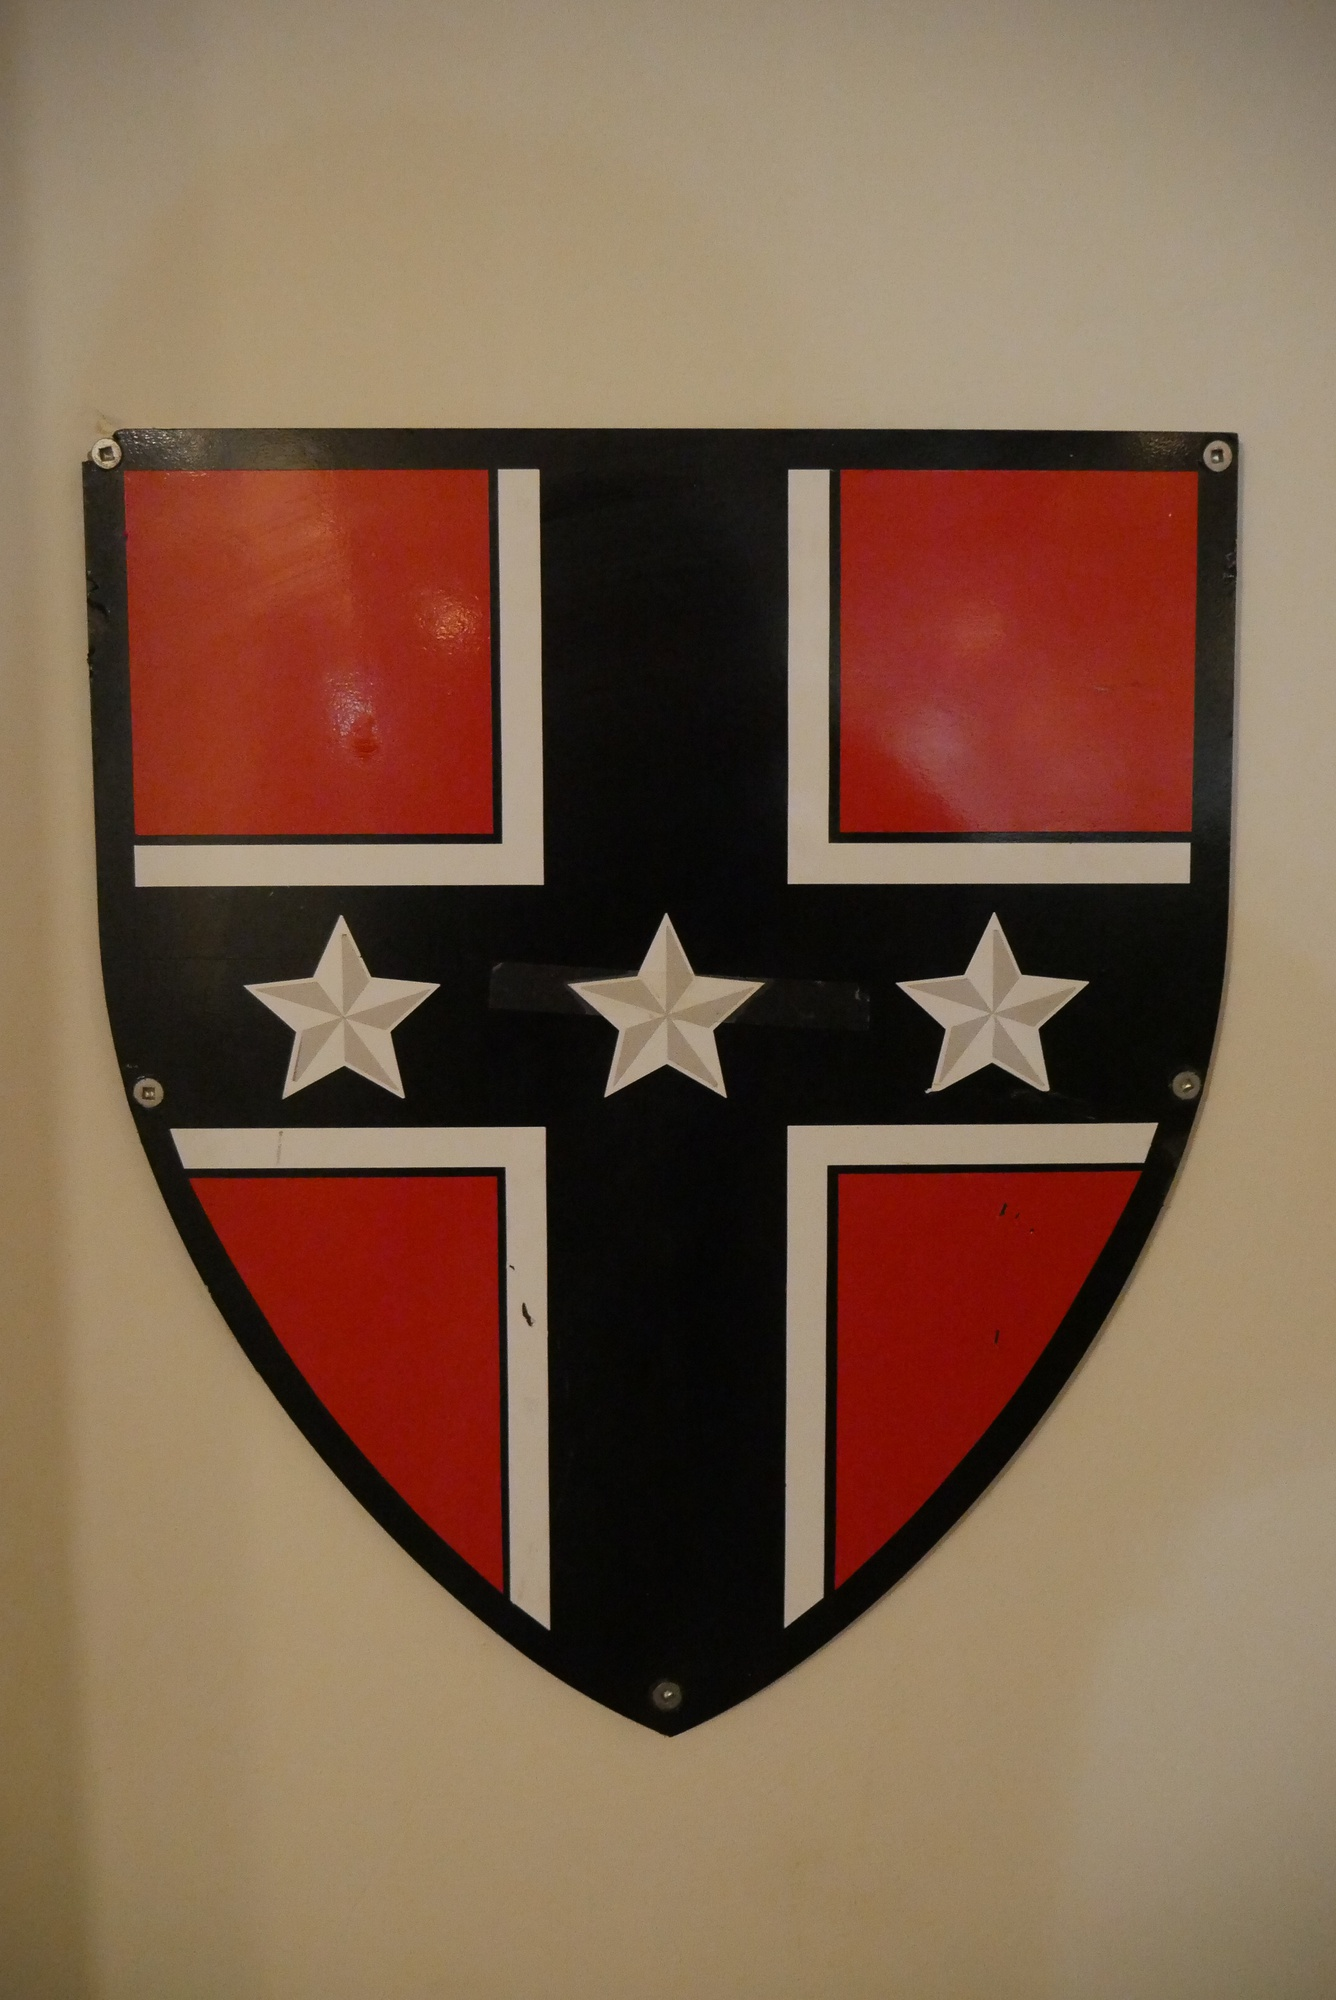 The Kirkland Shield and the Confederate flag are officially unrelated.